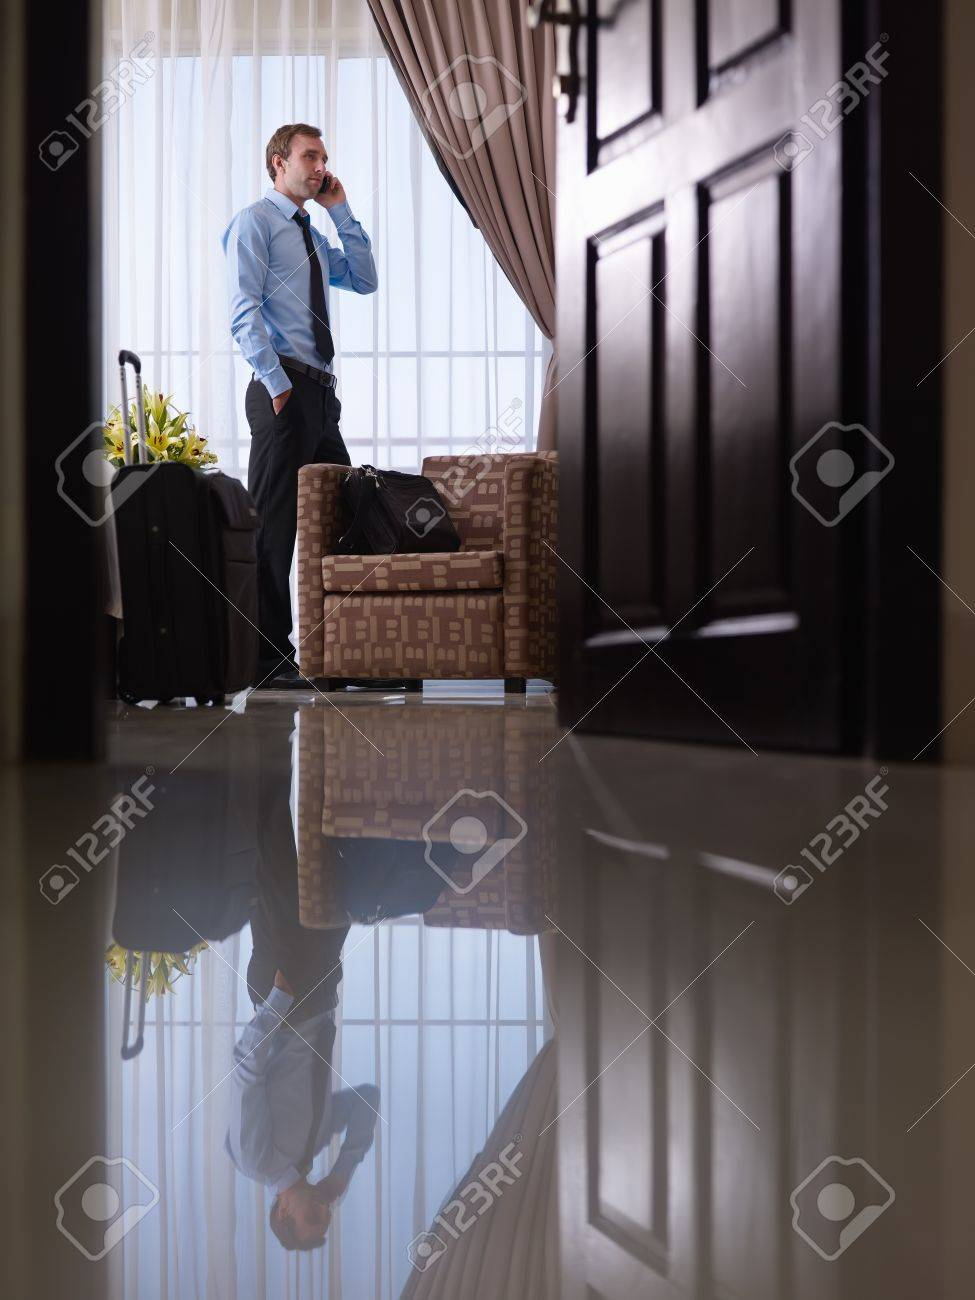 Caucasian mid adult businessman talking with mobile telephone in hotel room during business trip Stock Photo - 12055135